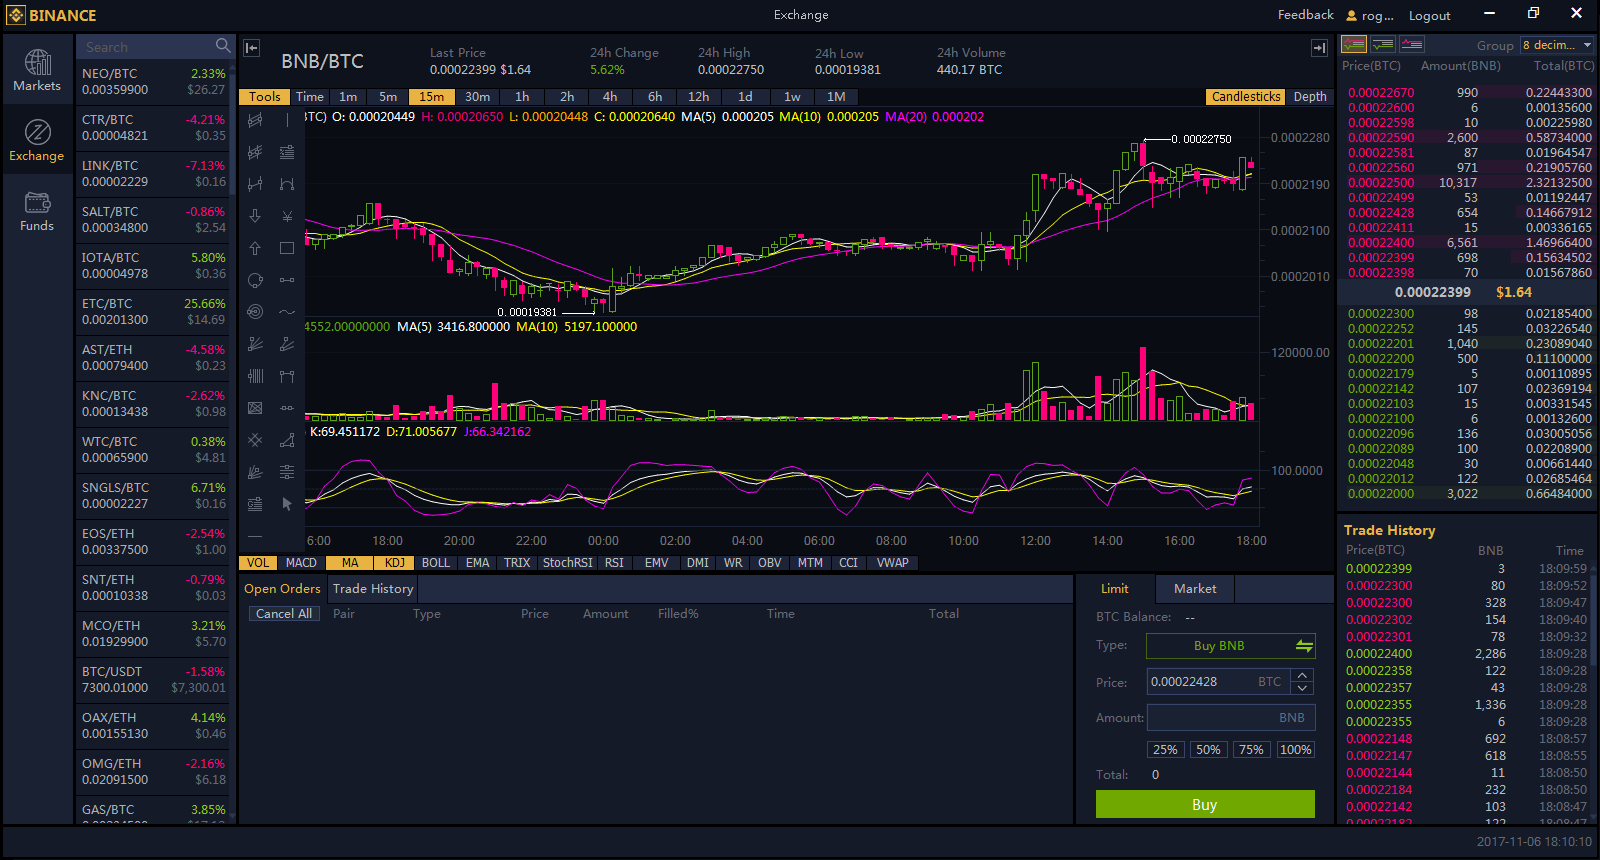 Screenshot of the Binance Windows version.